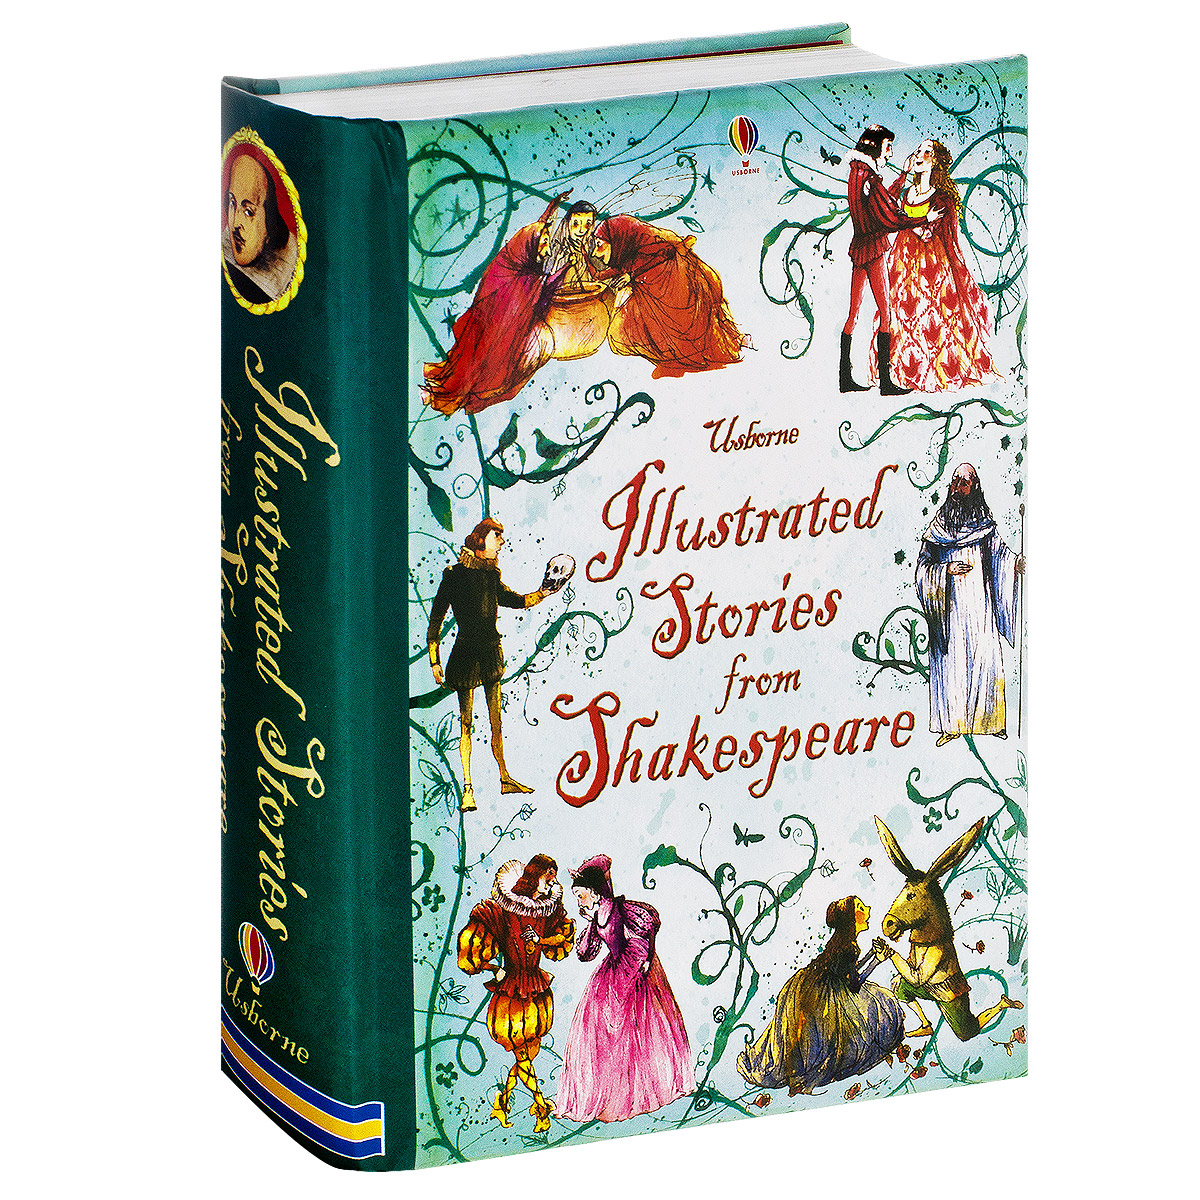 Illustrated Stories from Shakespeare рубина д адам и мирьям